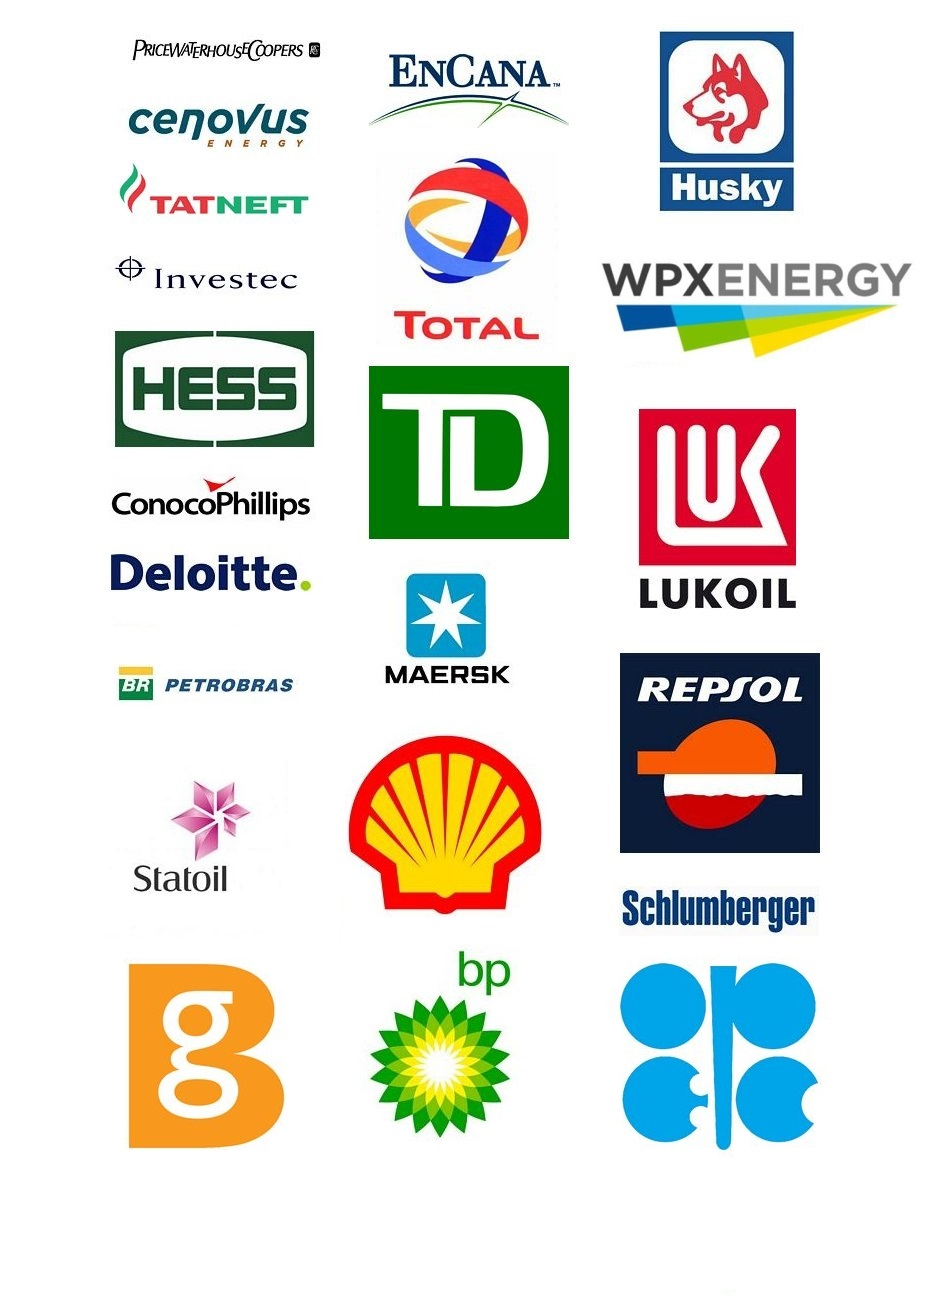 oil companies Oil and gas company careers websites oil and gas organisations often advertise career opportunities on their company websites please click on the logos below to view more information on available positions within the listed businesses.